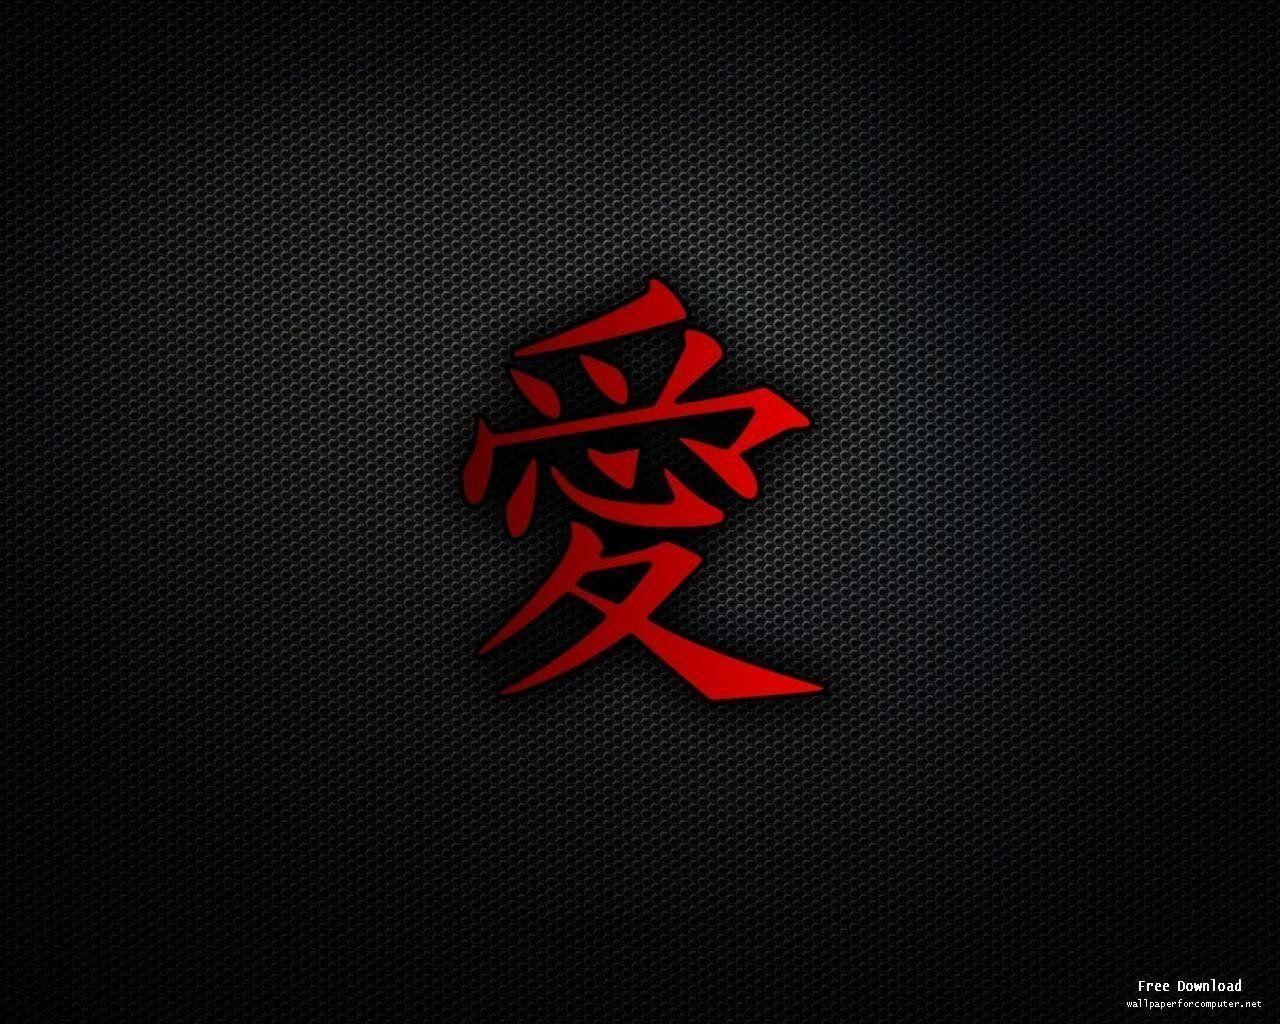 chinese Symbols Wallpapers - Wallpaper cave